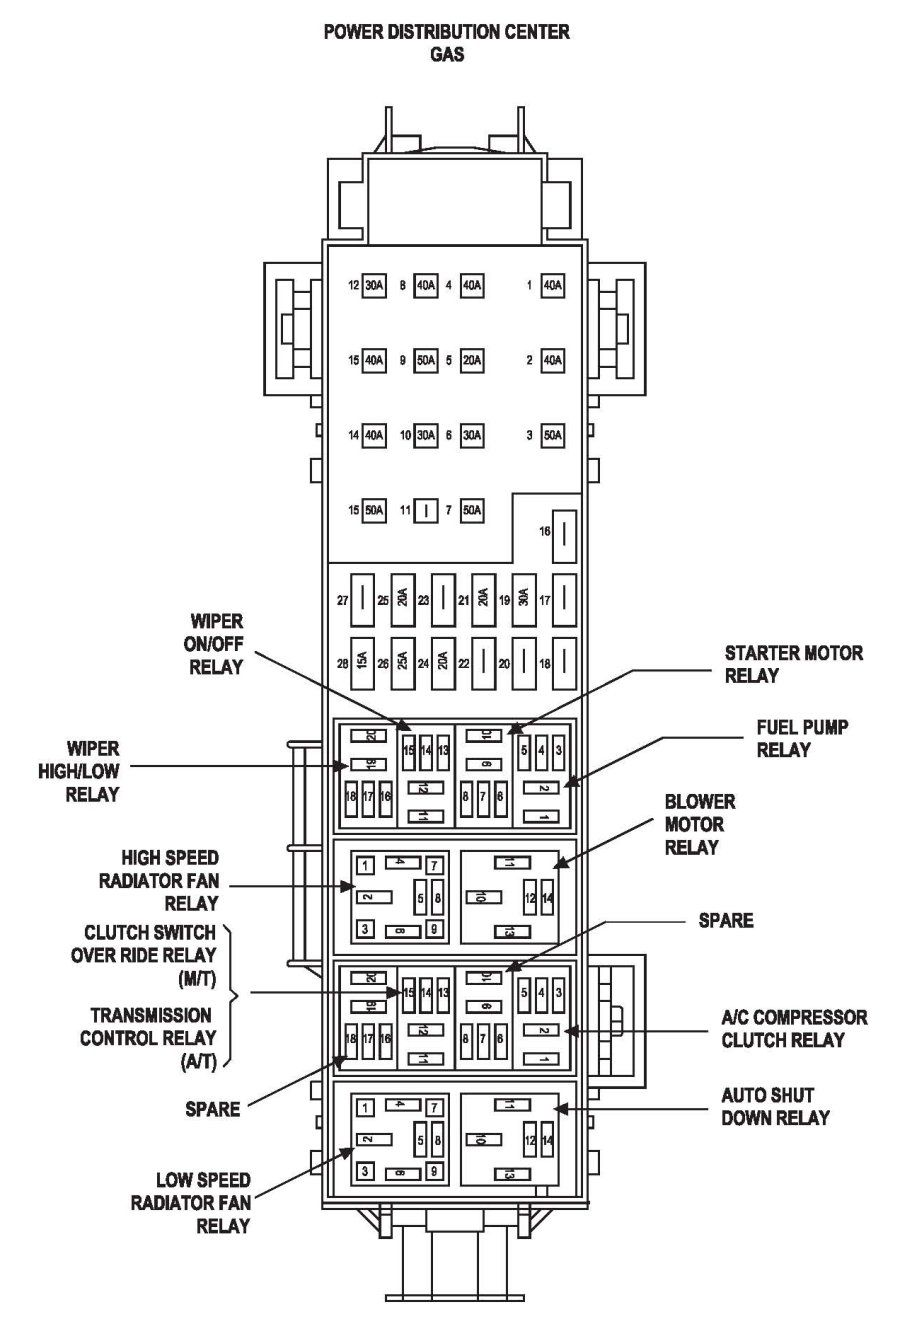 b3536c3739783eb19f827744cc42c3c4 jeep liberty fuse box diagram image details jeep liberty 1979 jeep cj 7 fuse box diagram at gsmx.co